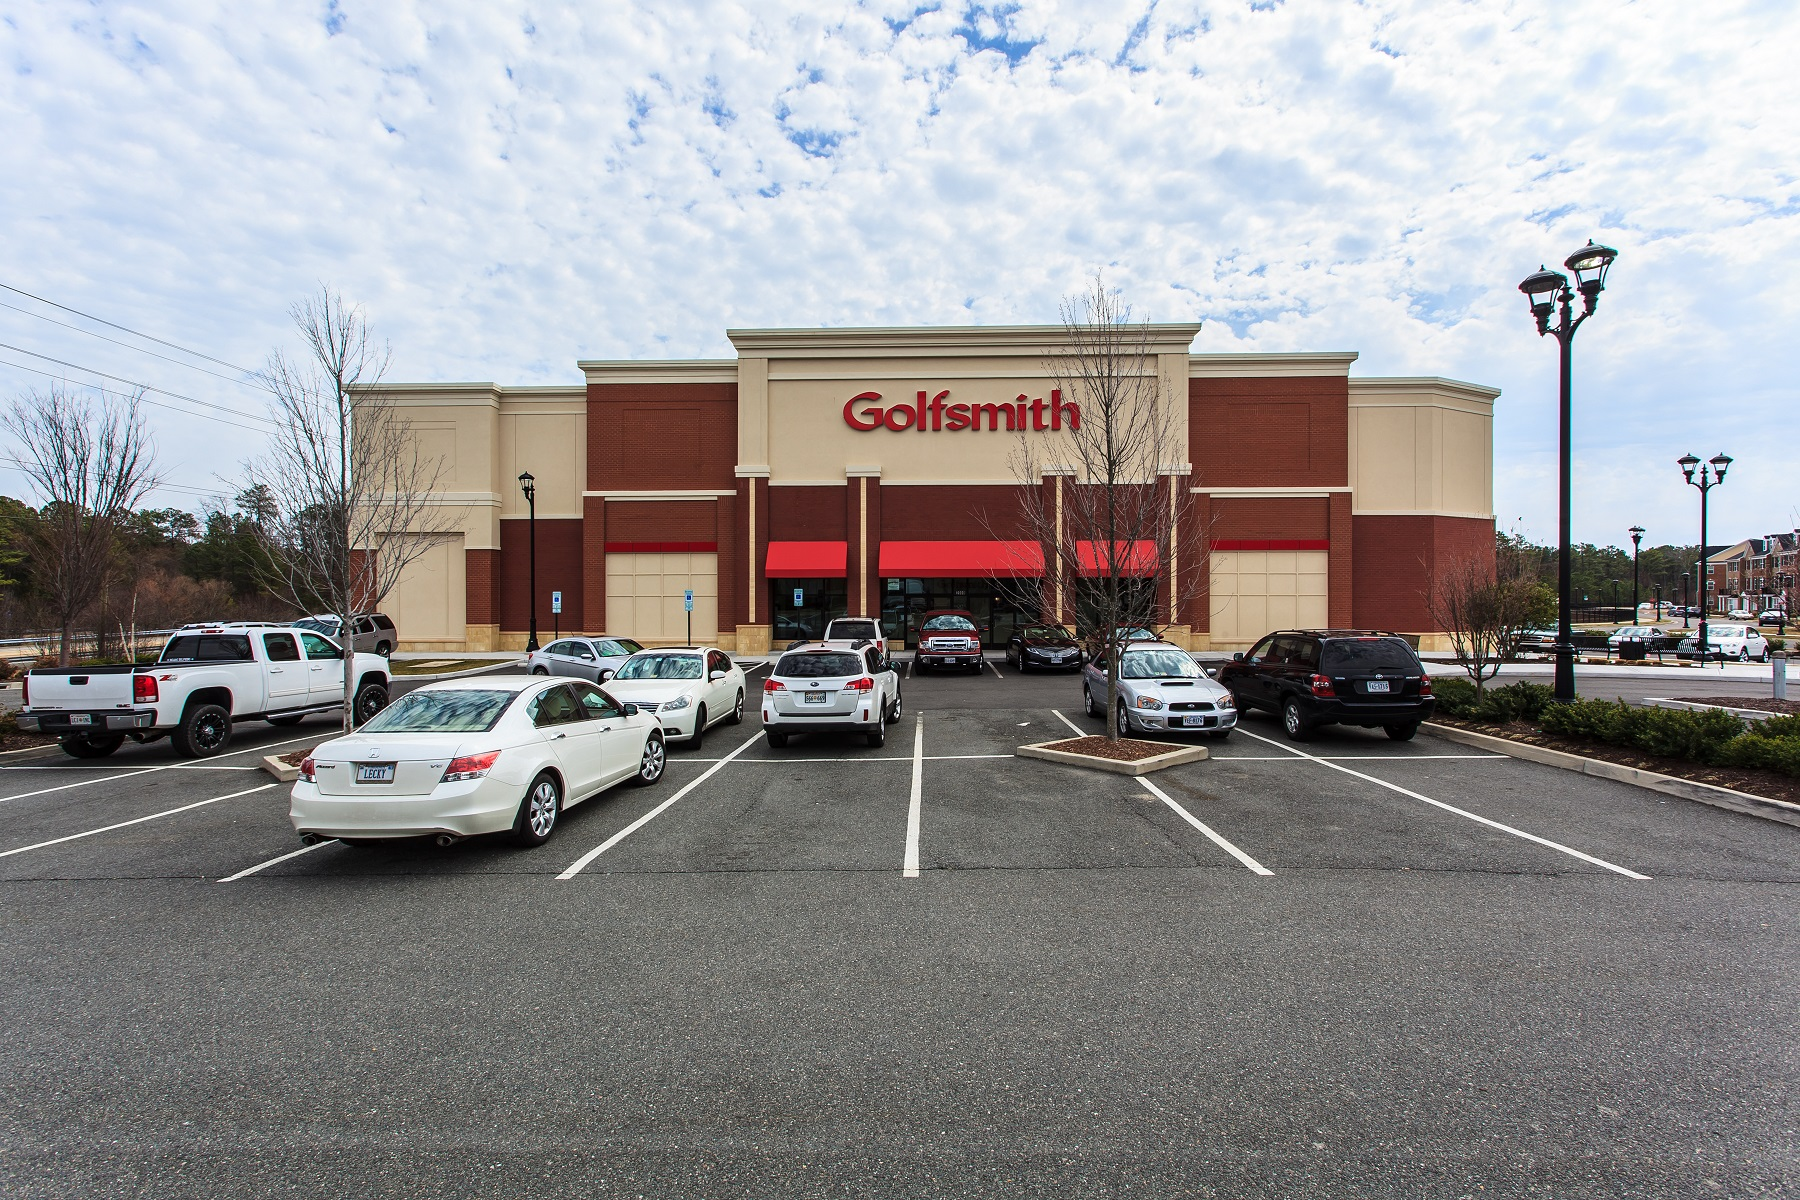 Golfsmith Retail Building